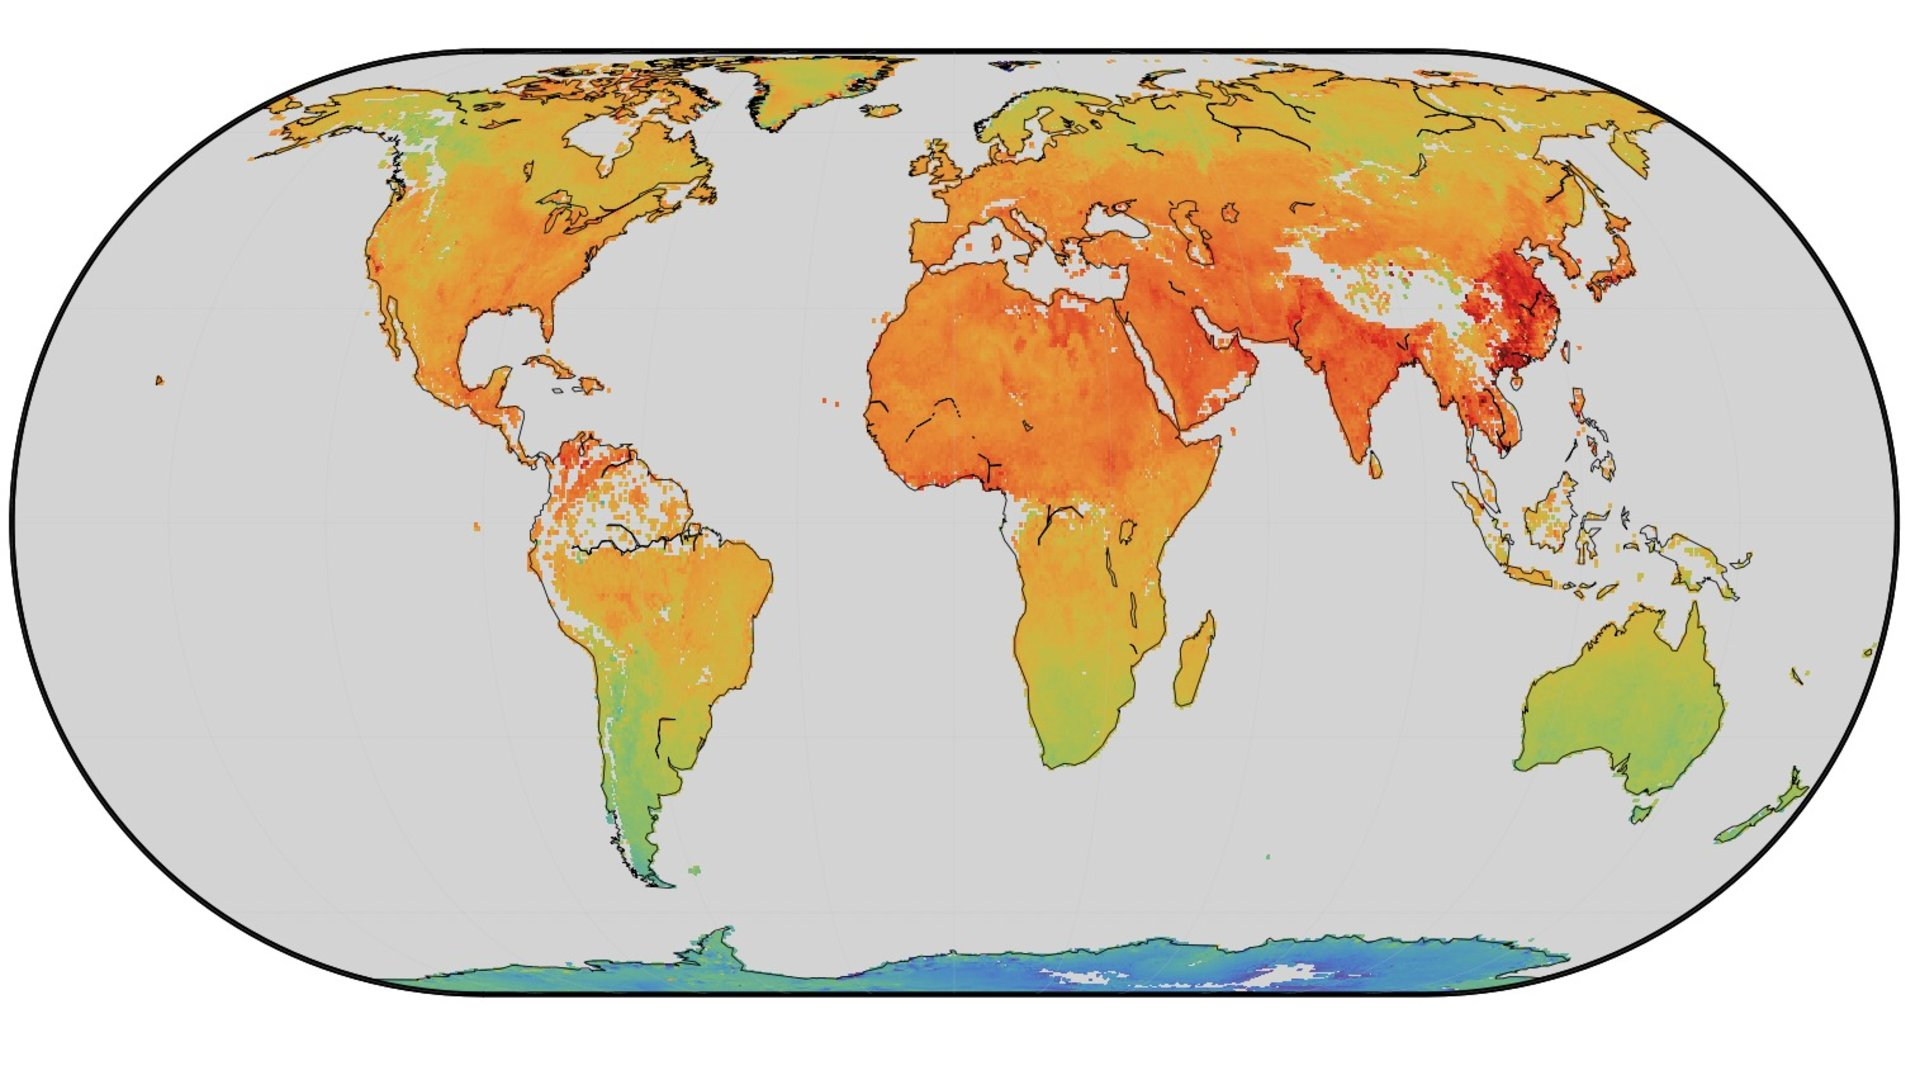 Methane and ozone data products from Copernicus Sentinel-5P